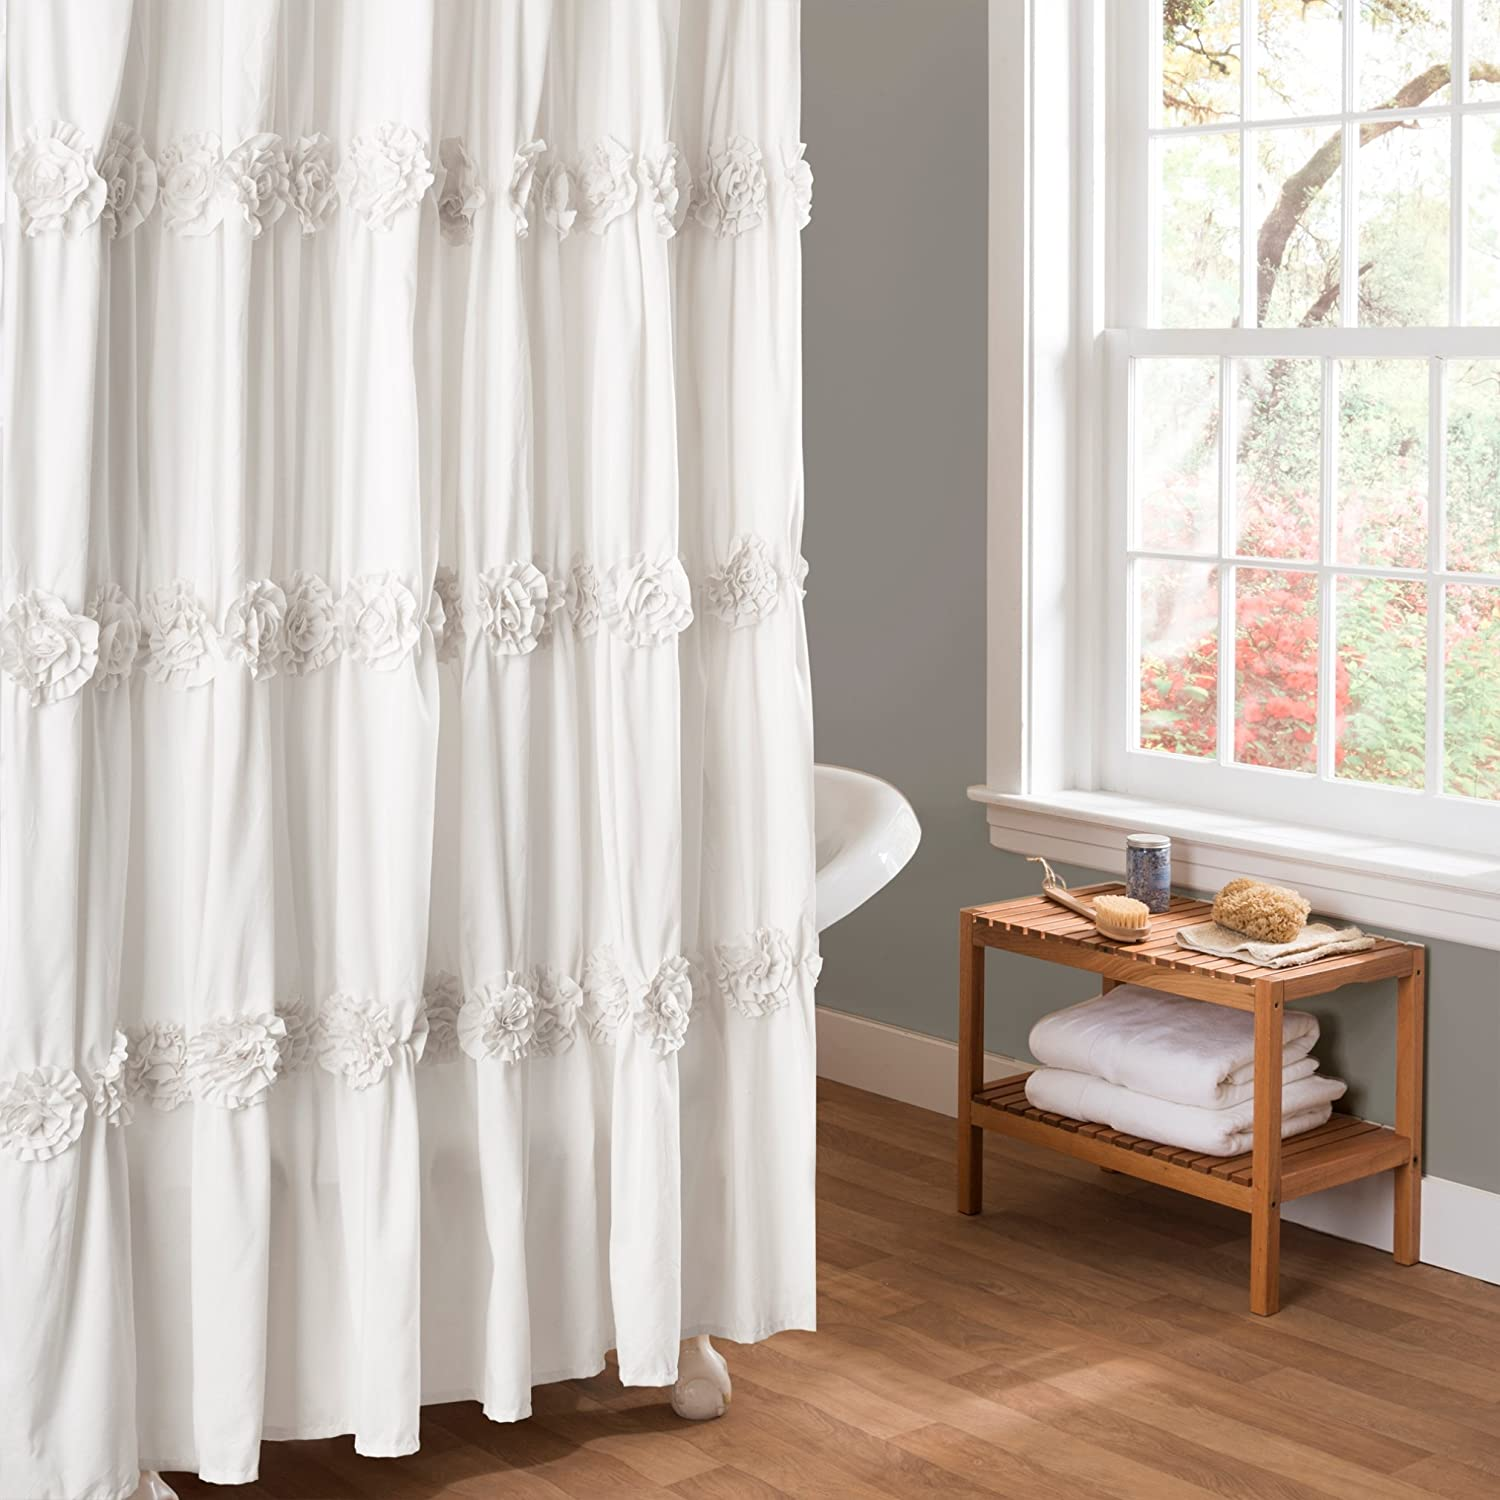 Bathroom curtains from walmart - Lush Decor Darla Shower Curtain 72 By 72 Inch White